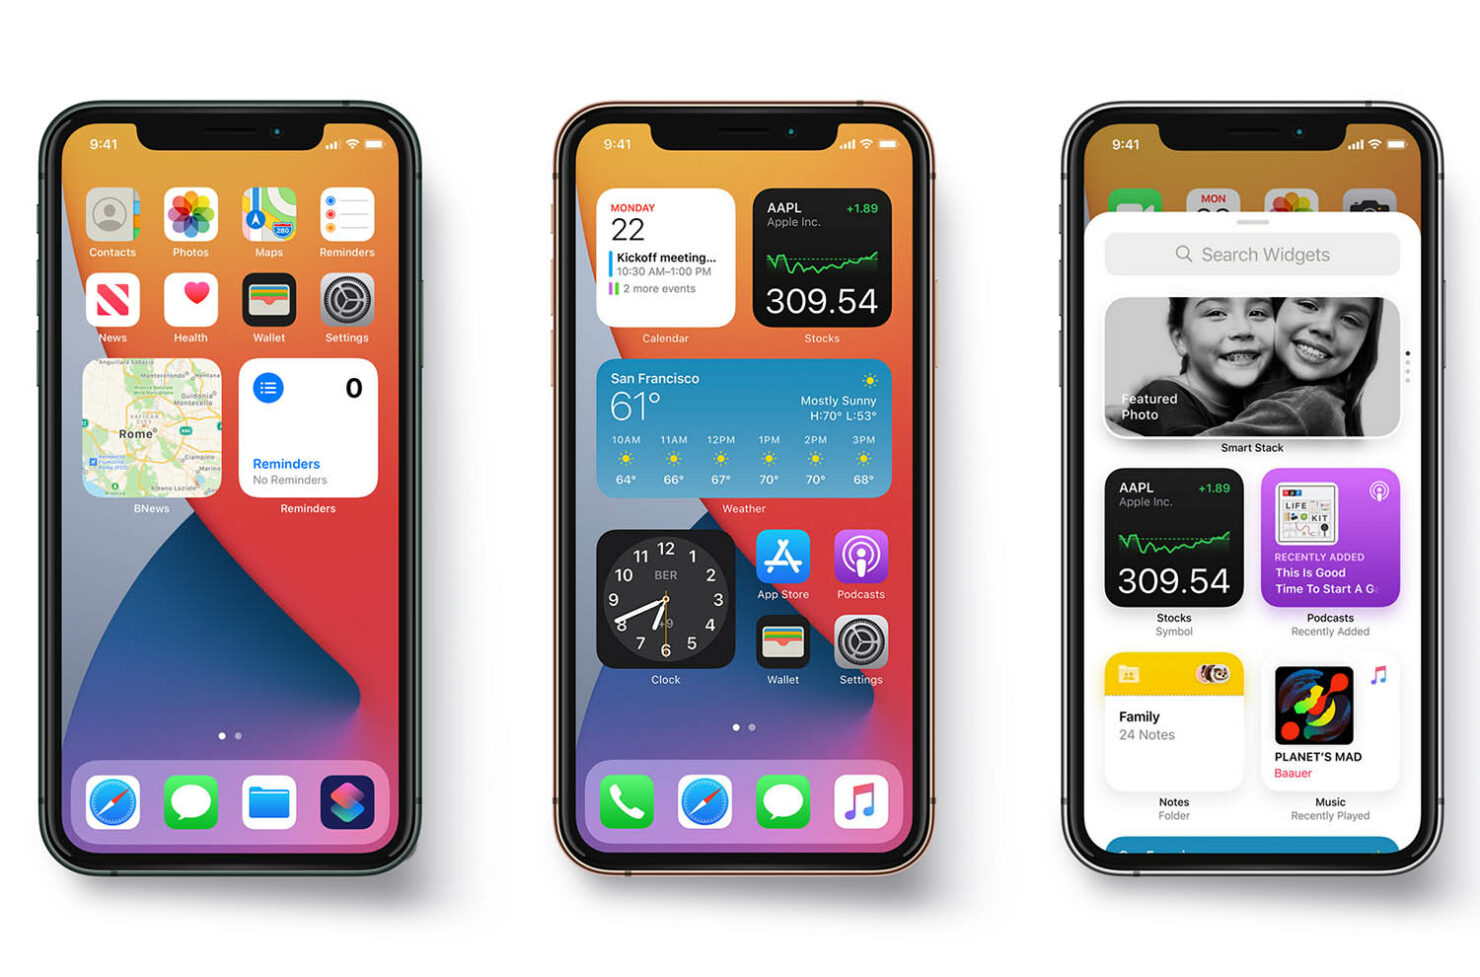 The iPhone Settings App Gets a Tremendous Makeover in Its UI in the Latest Concept